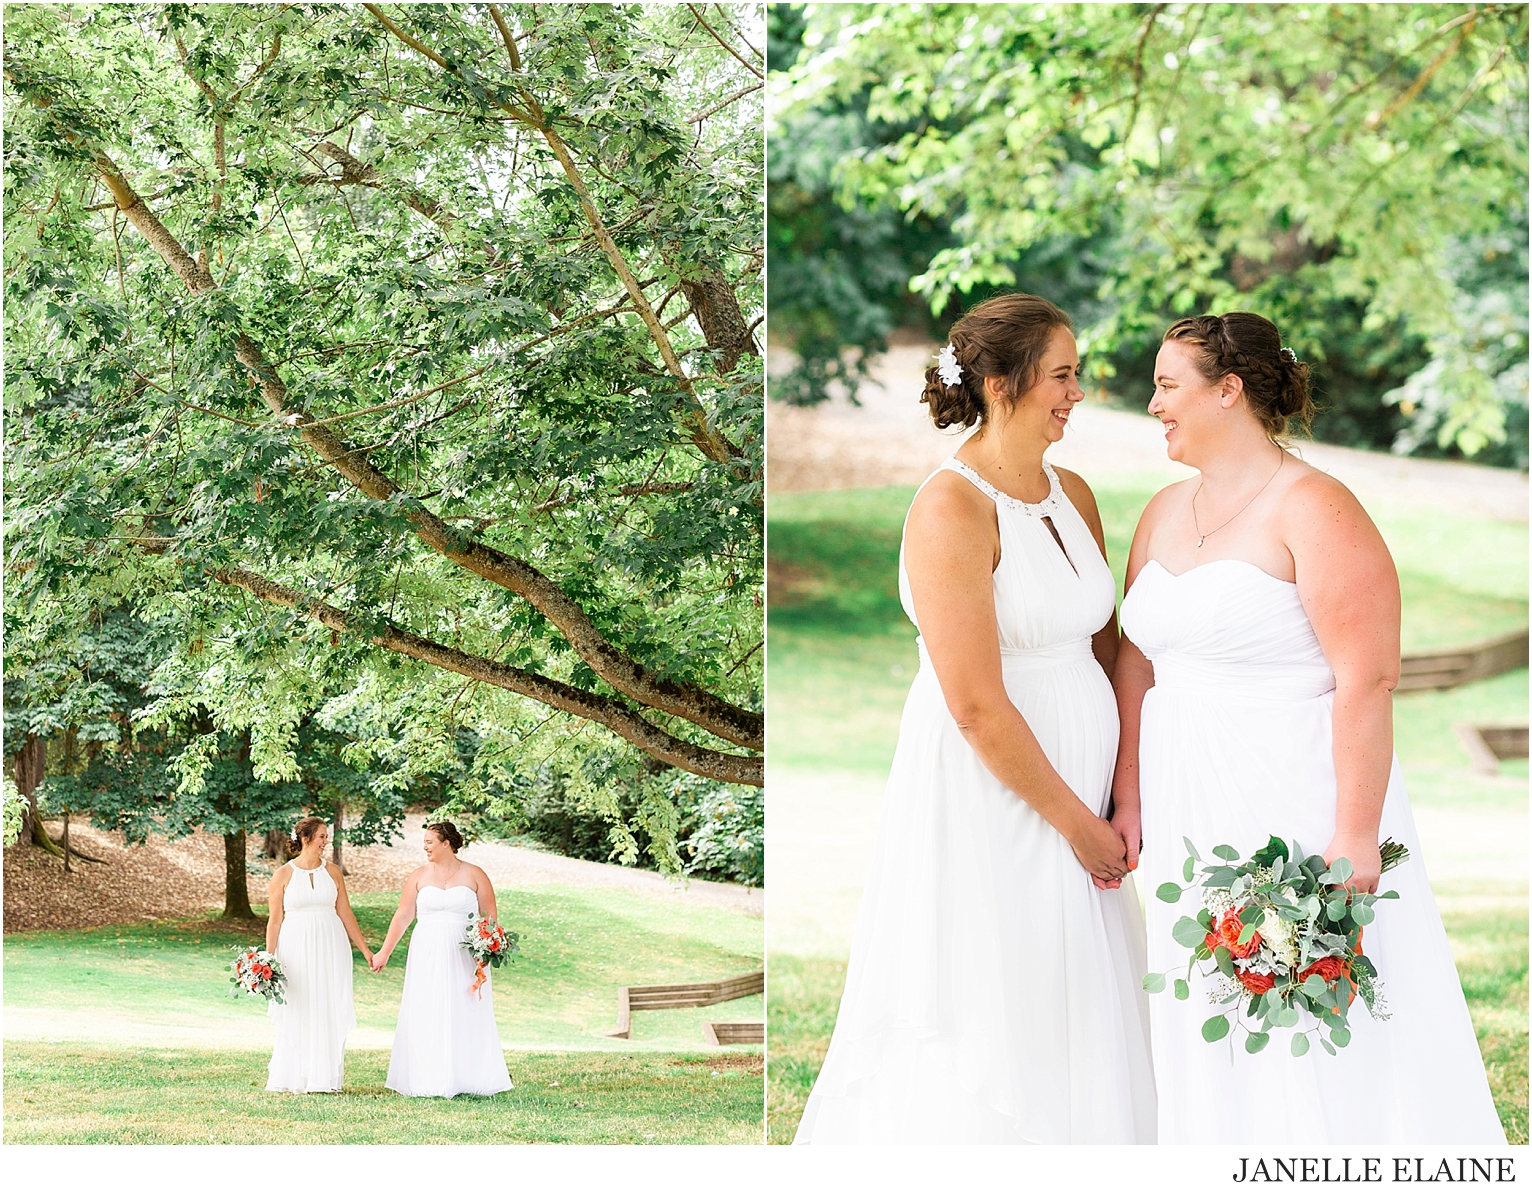 liz and christina lanning-first look and portraits-luther burbank park-janelle elaine photography-148.jpg